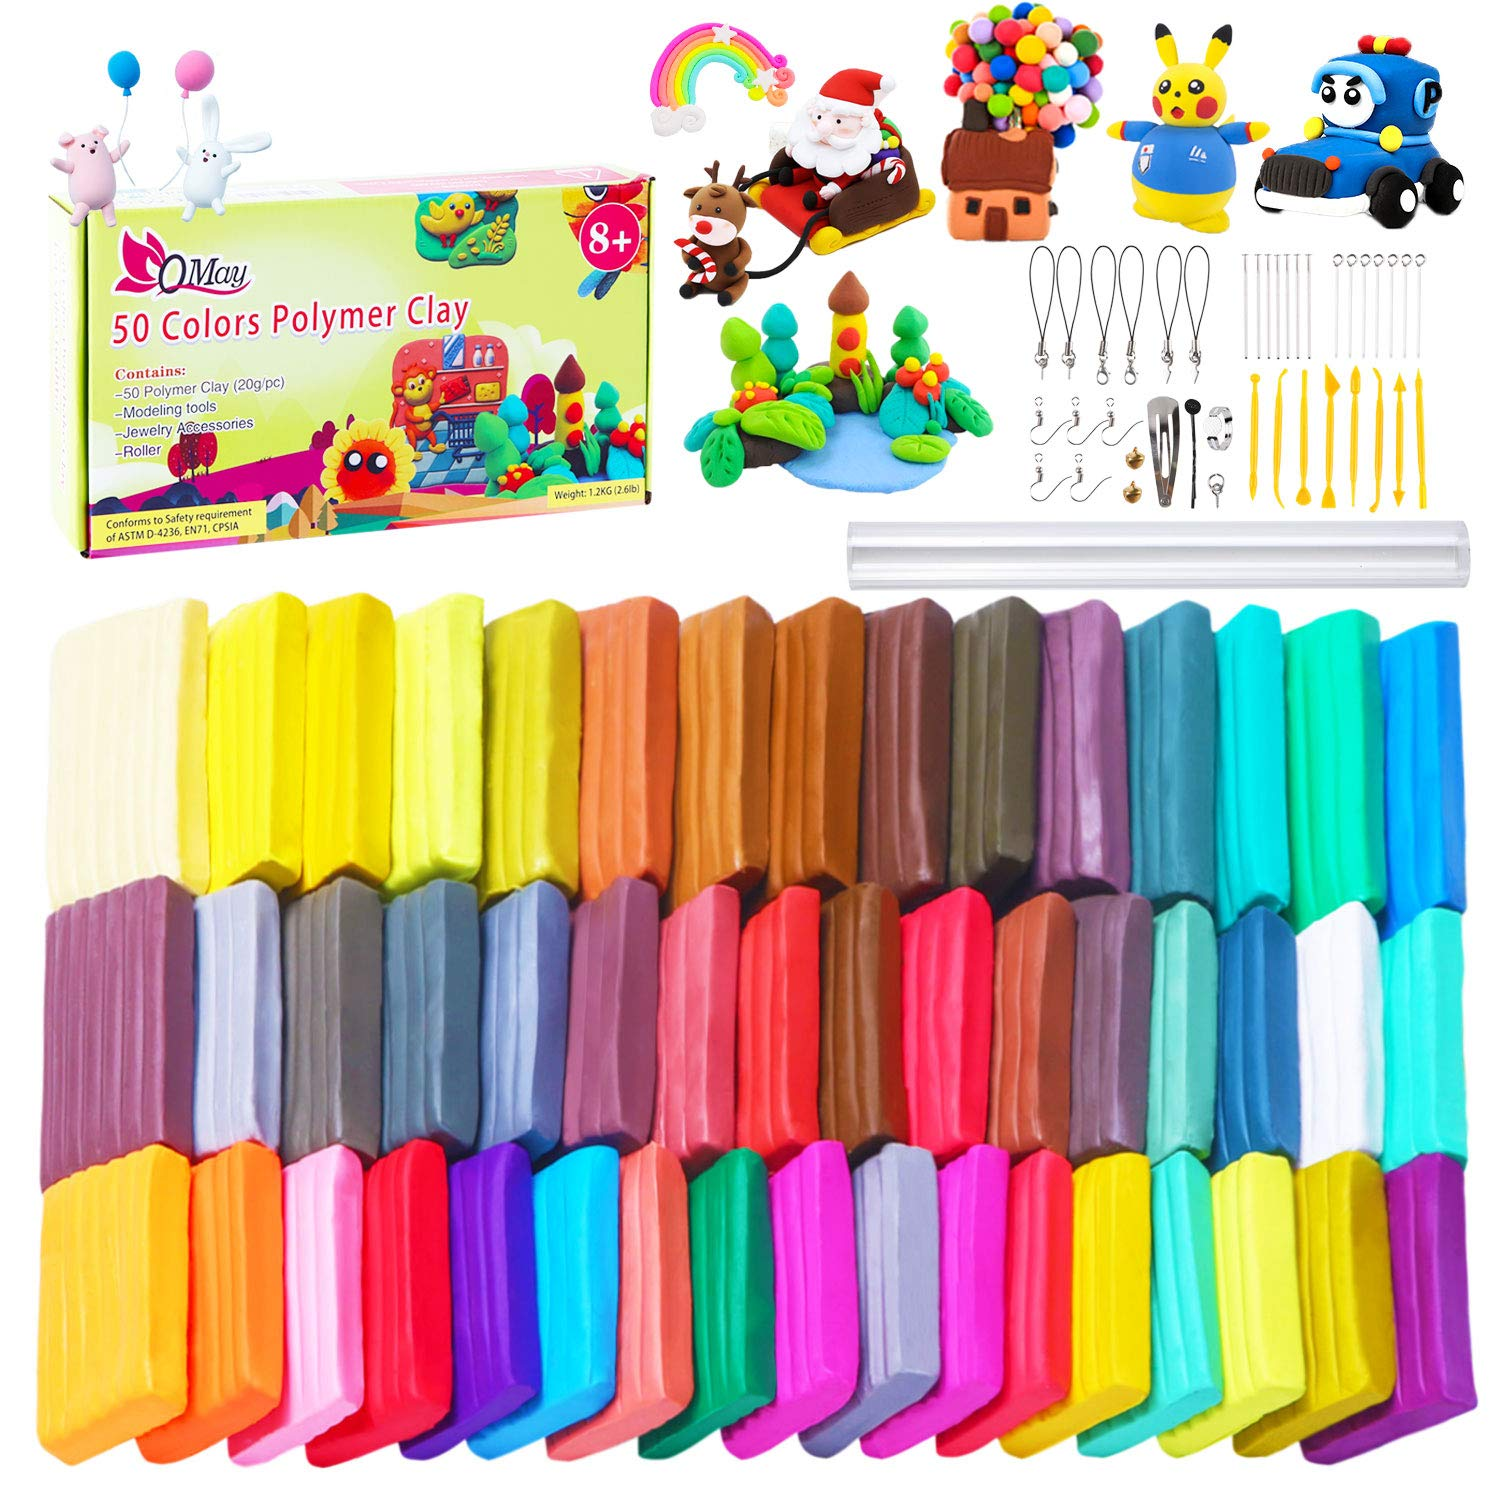 QMAY 50 Colors Polymer Clay Set, DIY Colored Clay Oven Bake Clay kit, Great Gift for Kids